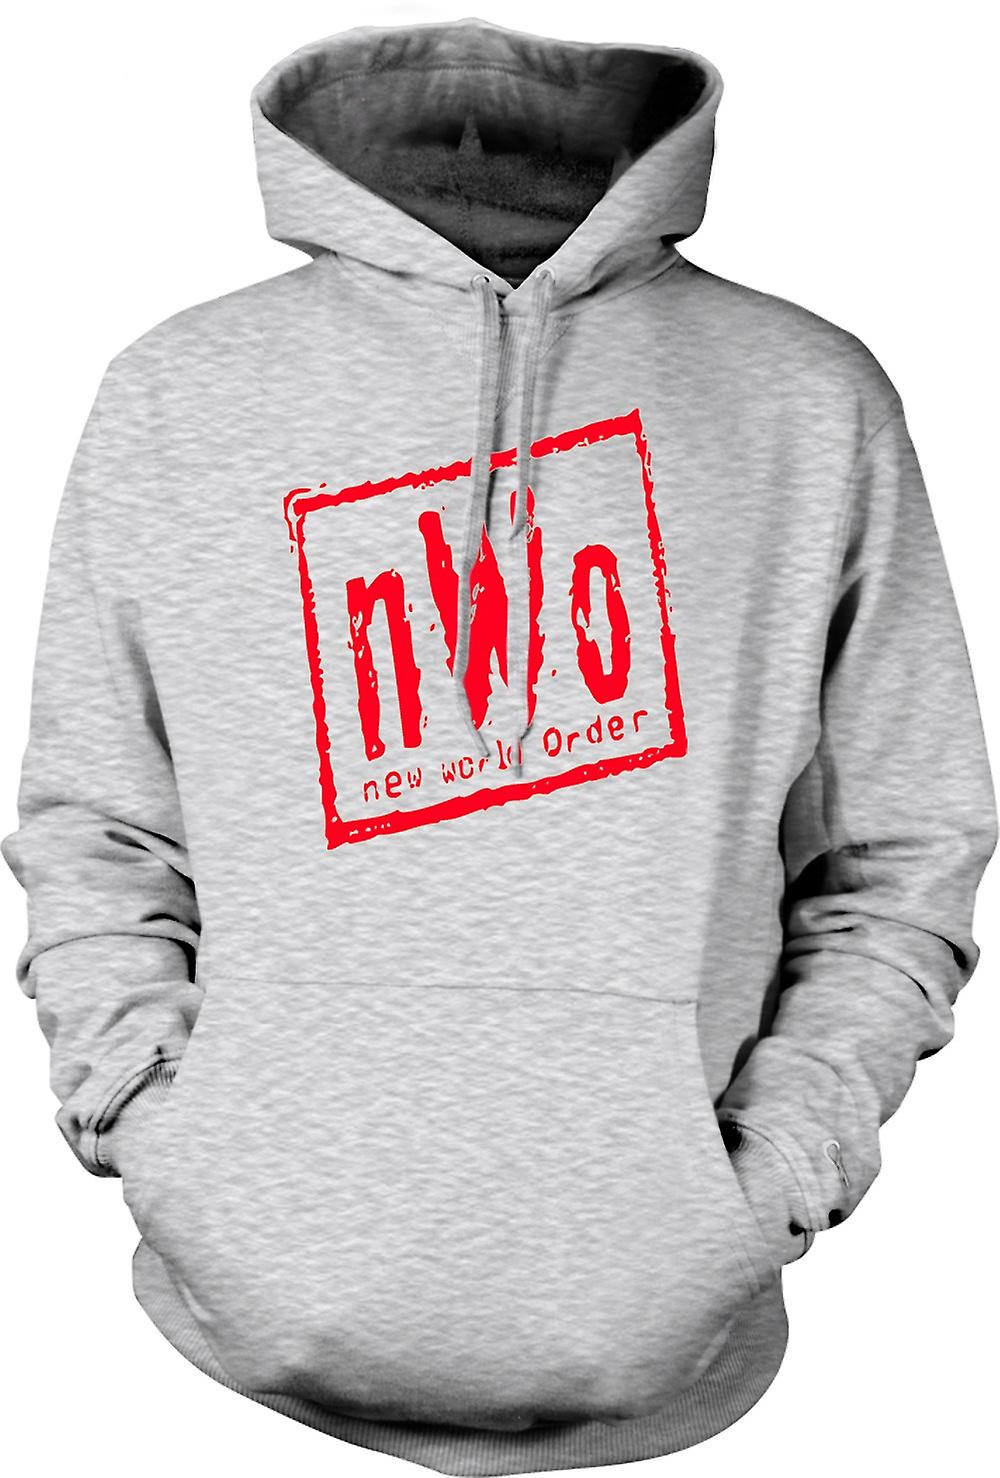 Mens Hoodie - NWO New World Order